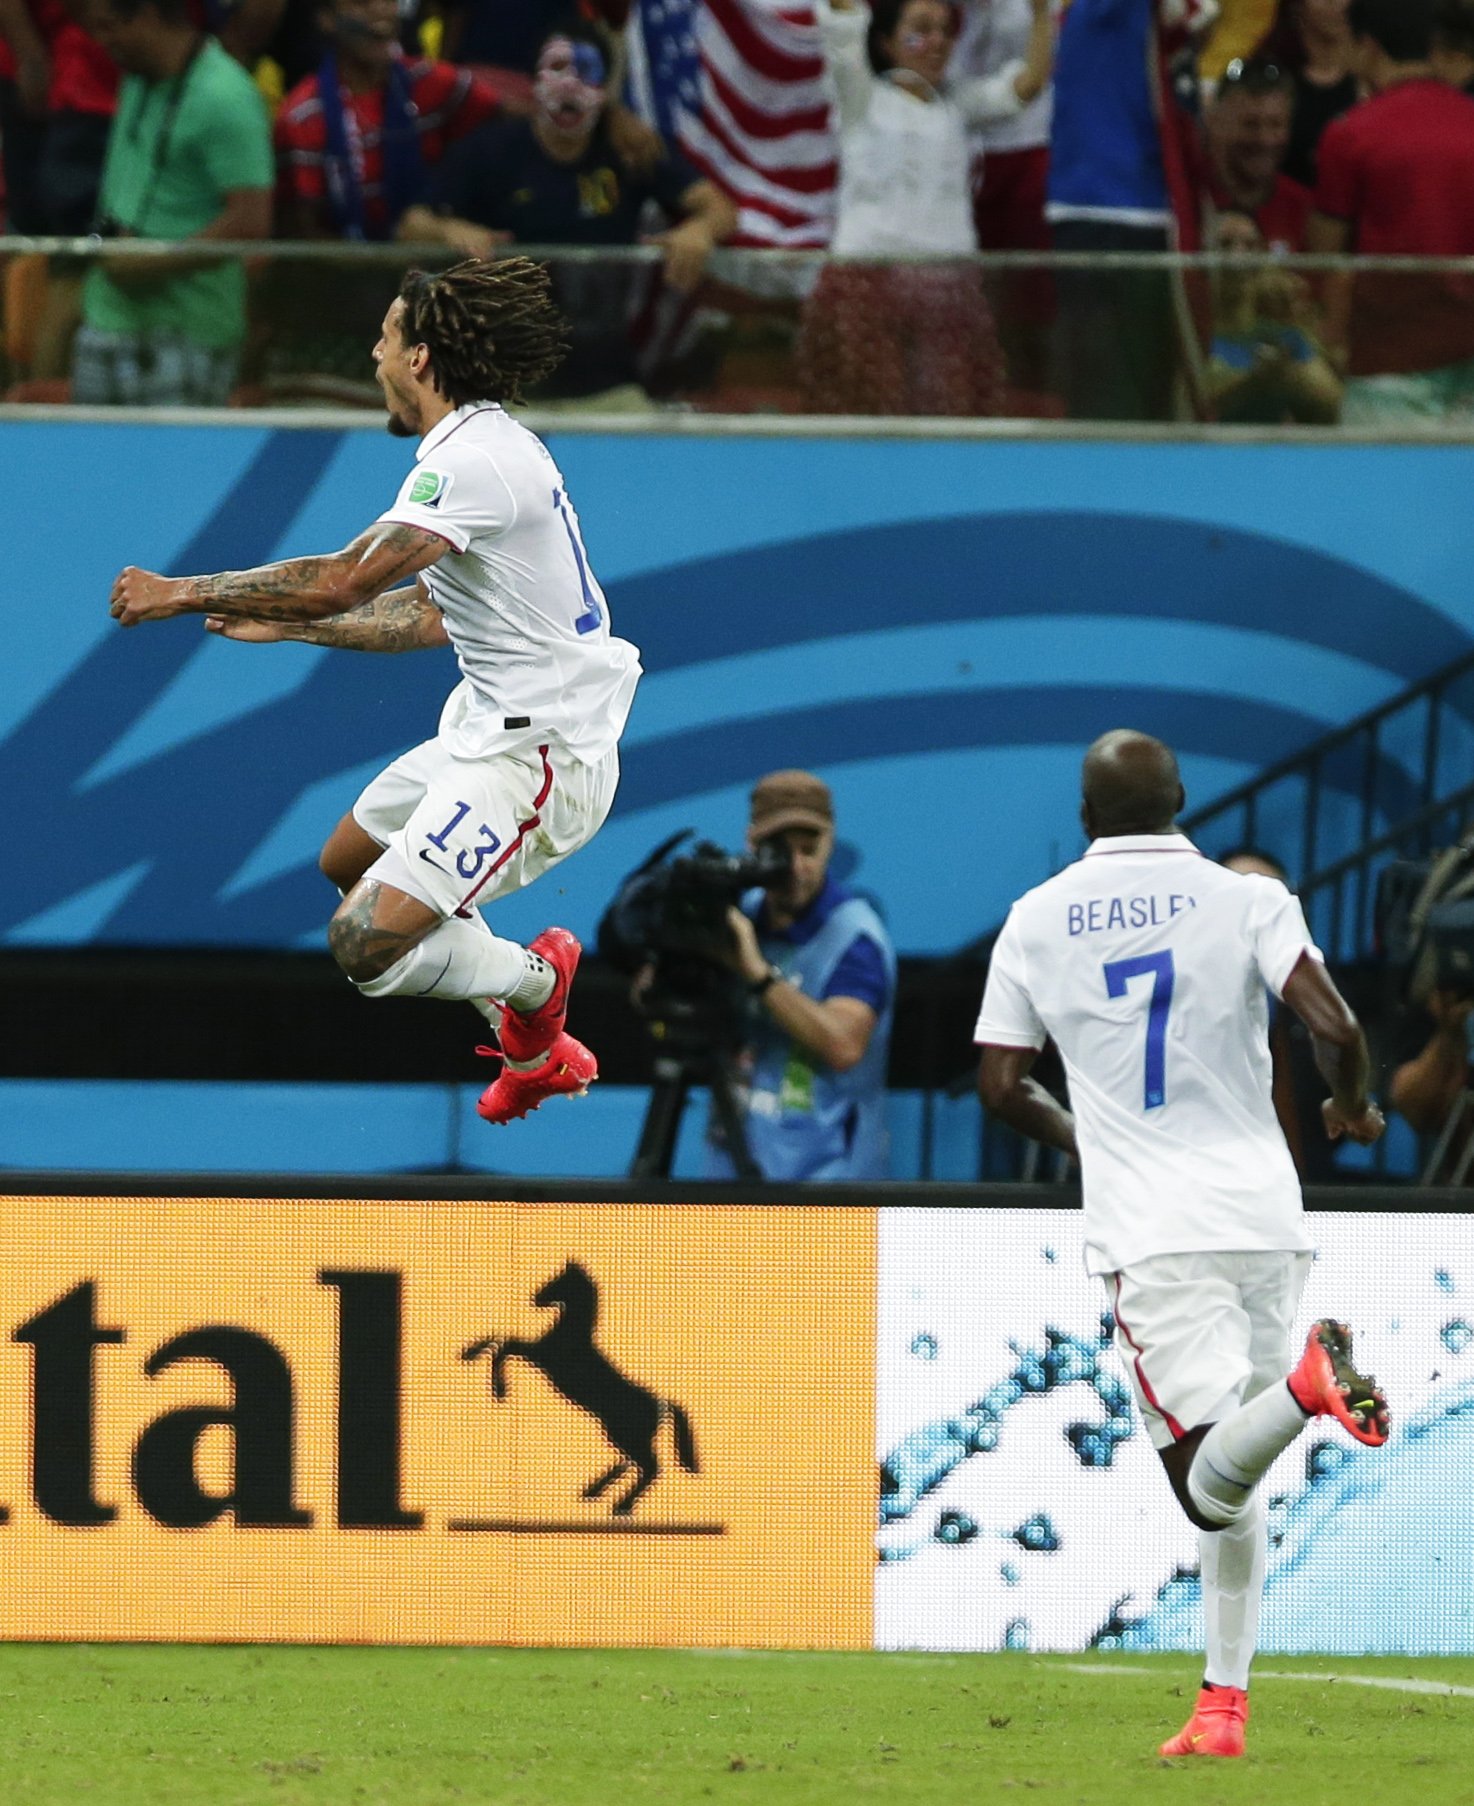 Jermaine Jones, left, celebrates with DaMarcus Beasley, right, after Jones scores USA's first goal in World Cup match against Portugal in Manaus, Brazil, on June 22.